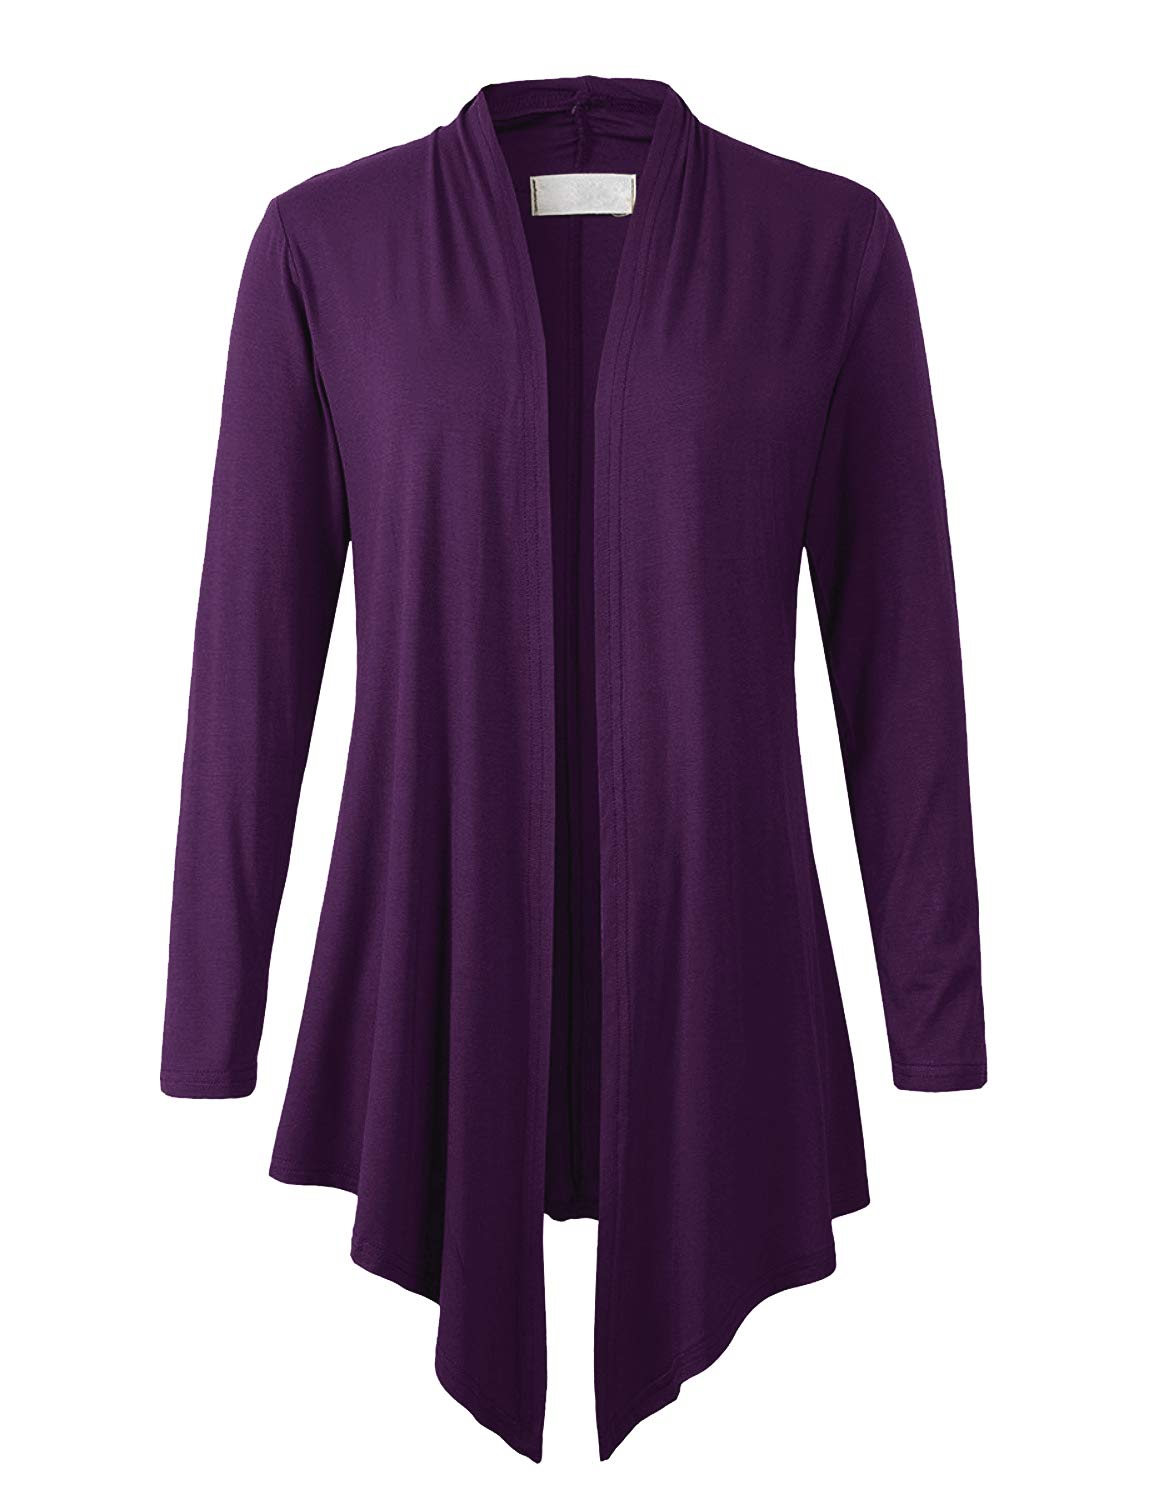 Eanklosco Women Open Front Cardigan Plus Size Drape Long Sleeve Coat (Purple